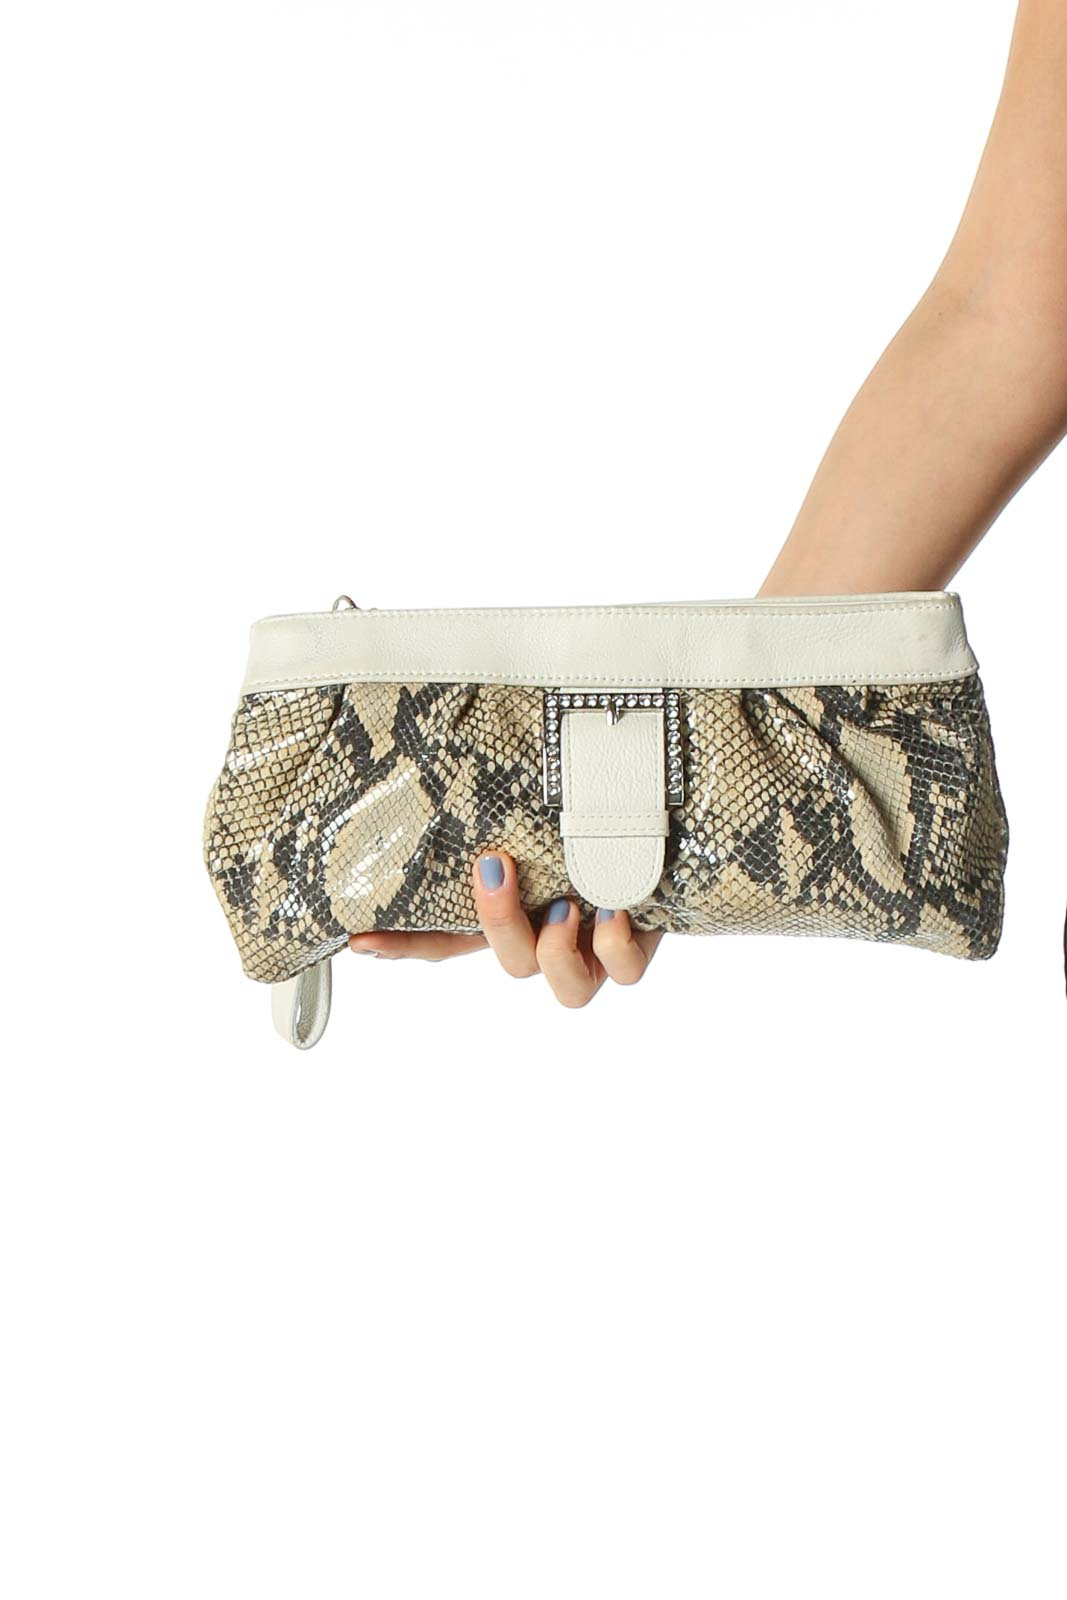 White Buckle Clutch Bag Front